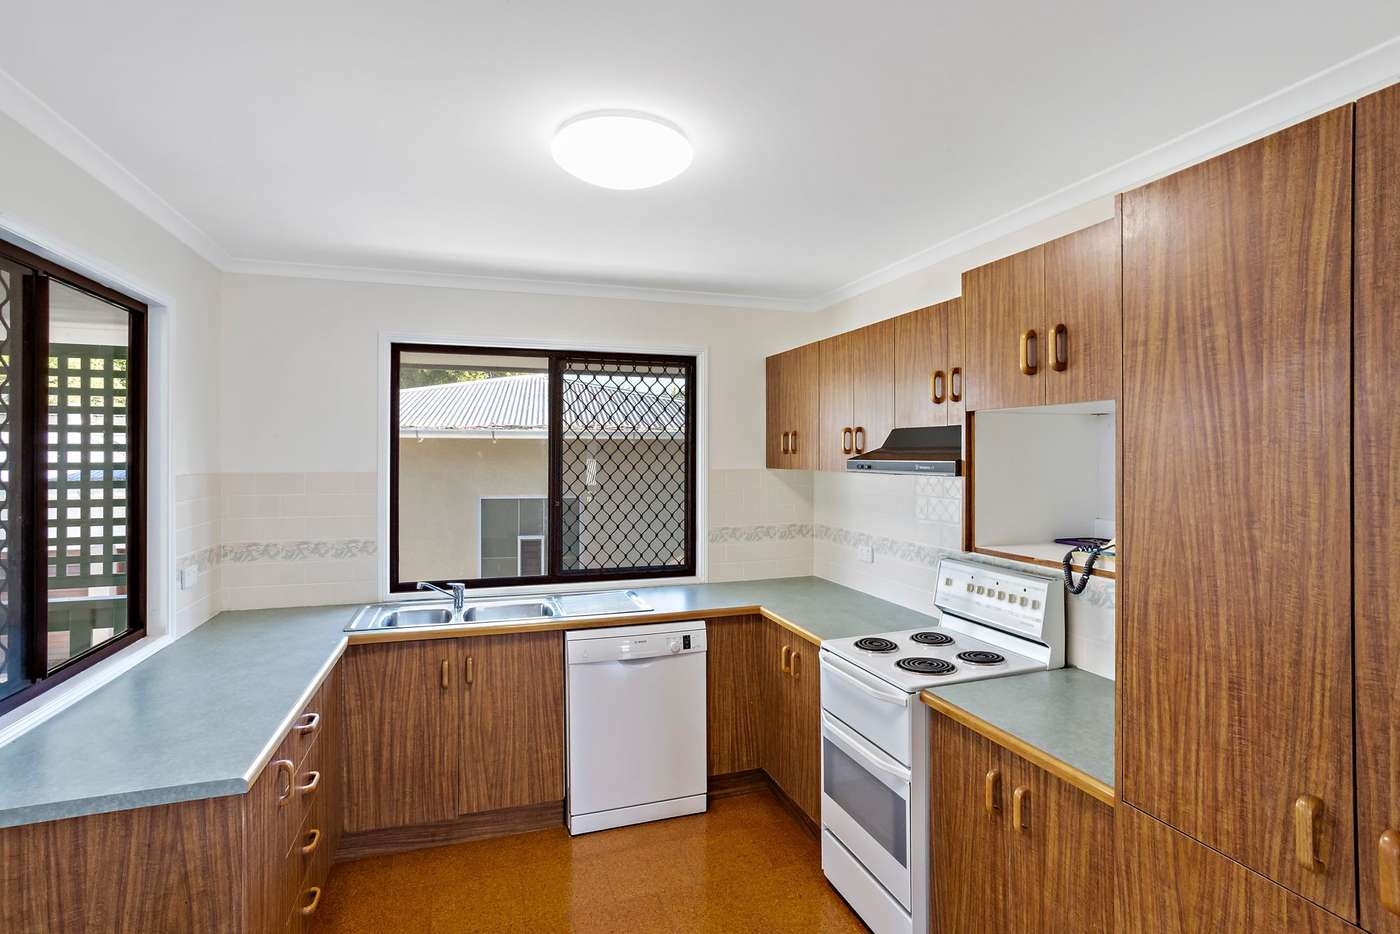 Seventh view of Homely house listing, 18 Cambridge Court, Tewantin QLD 4565